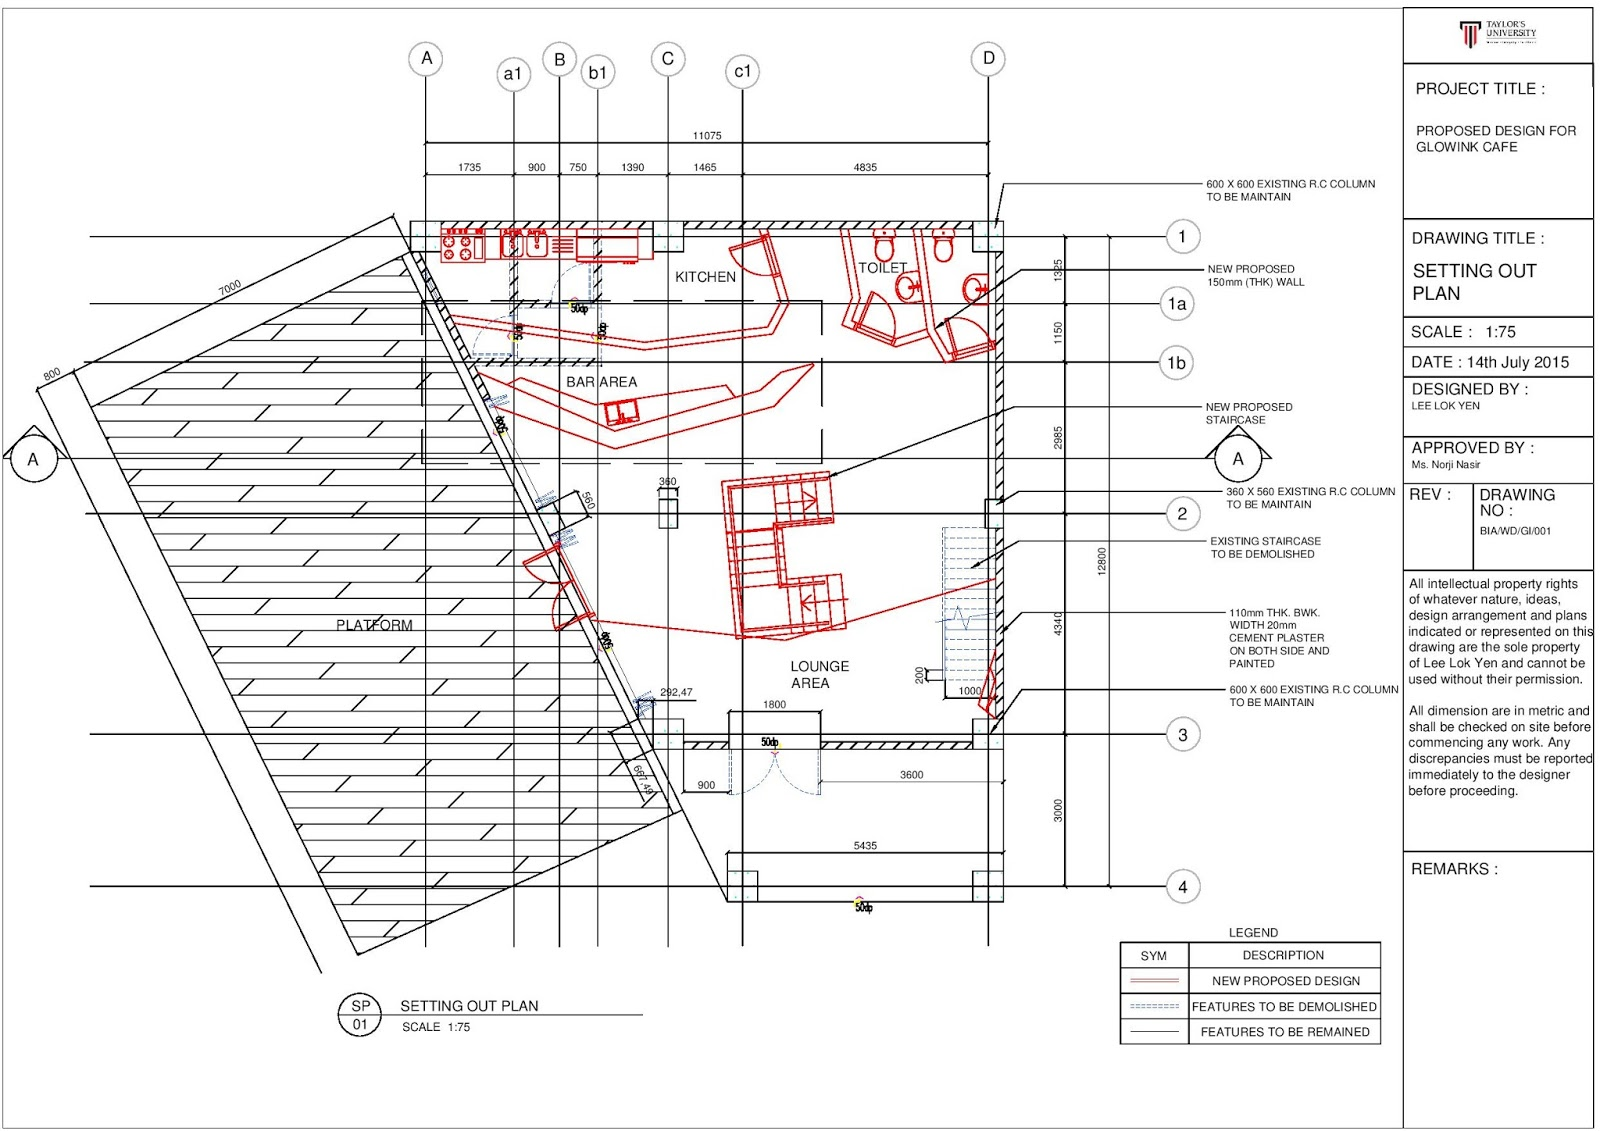 Detailing And Working Drawings